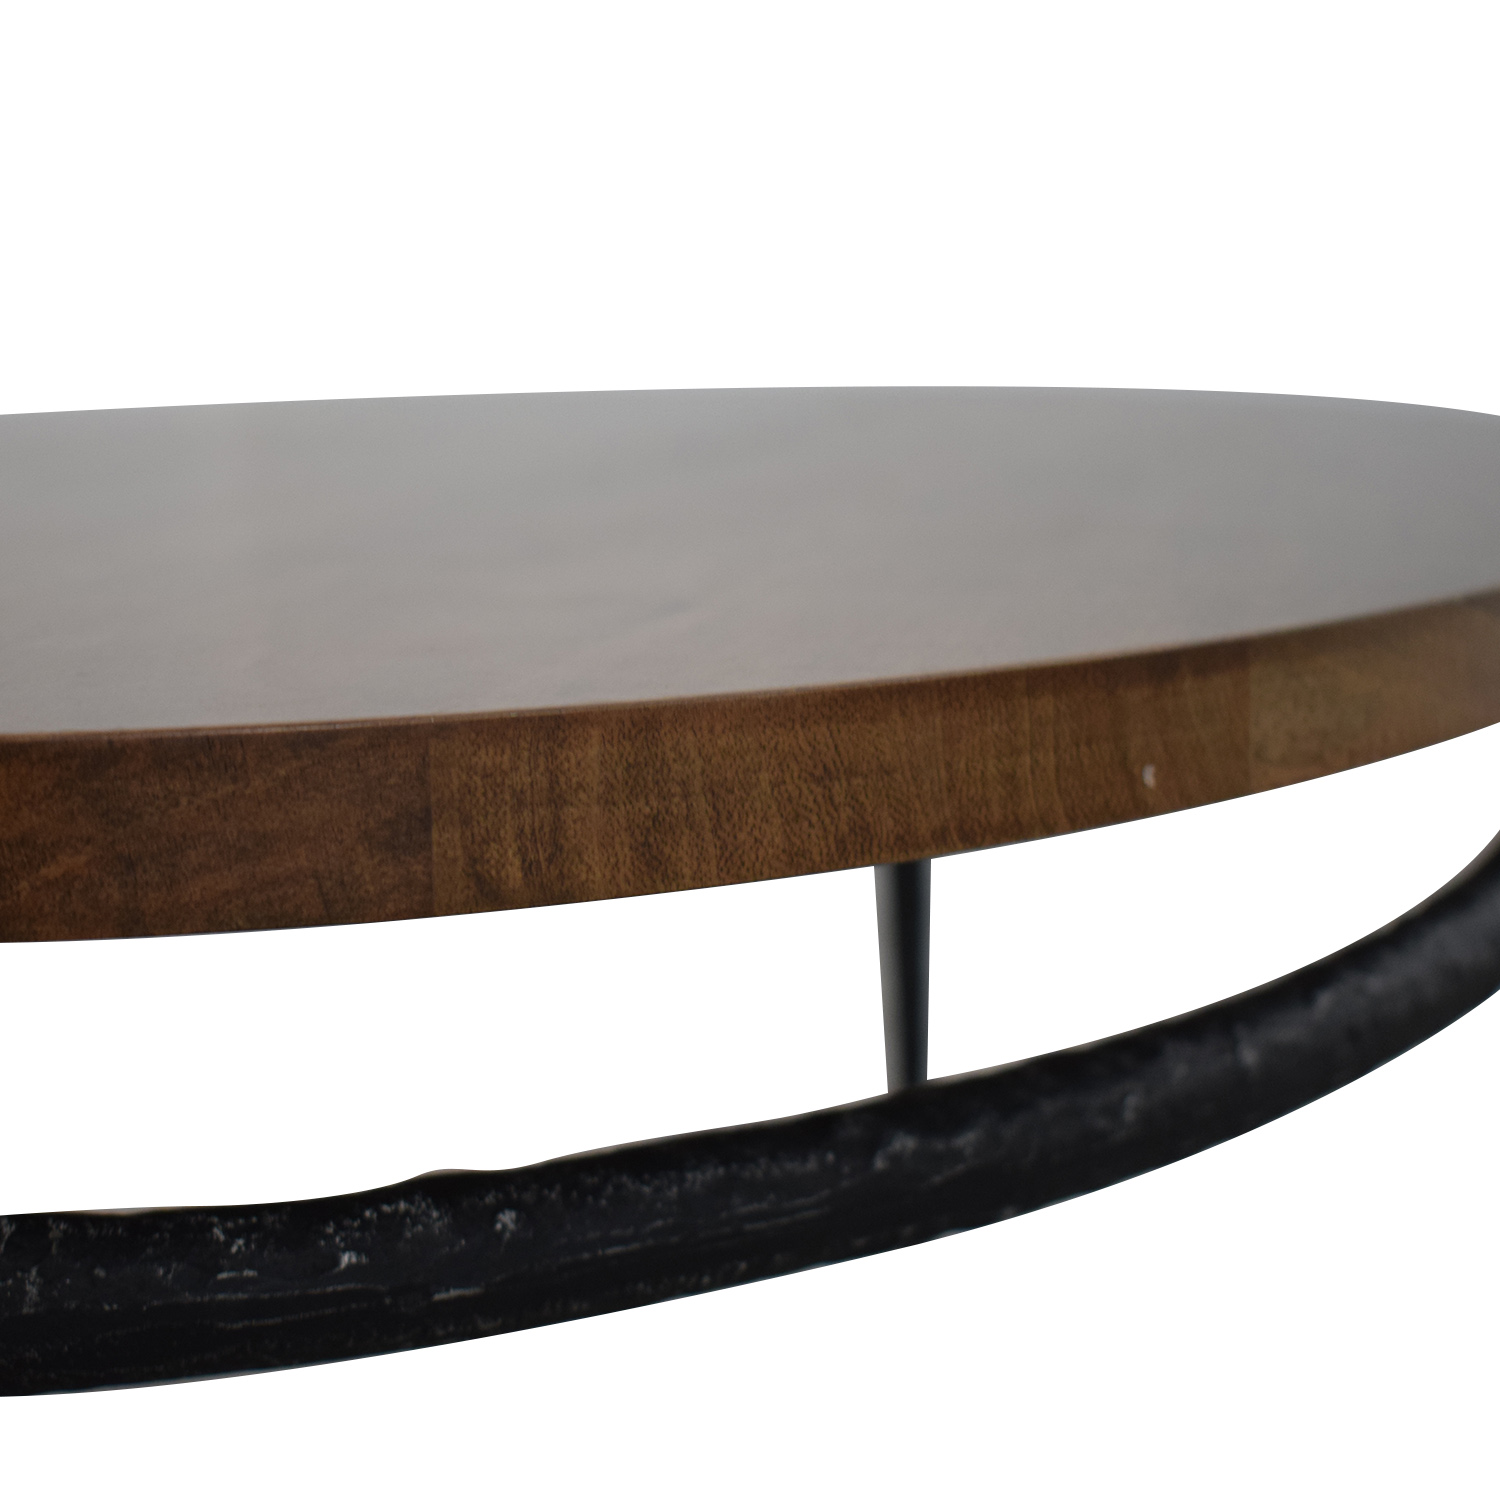 West Elm West Elm Cast Base Coffee Table price